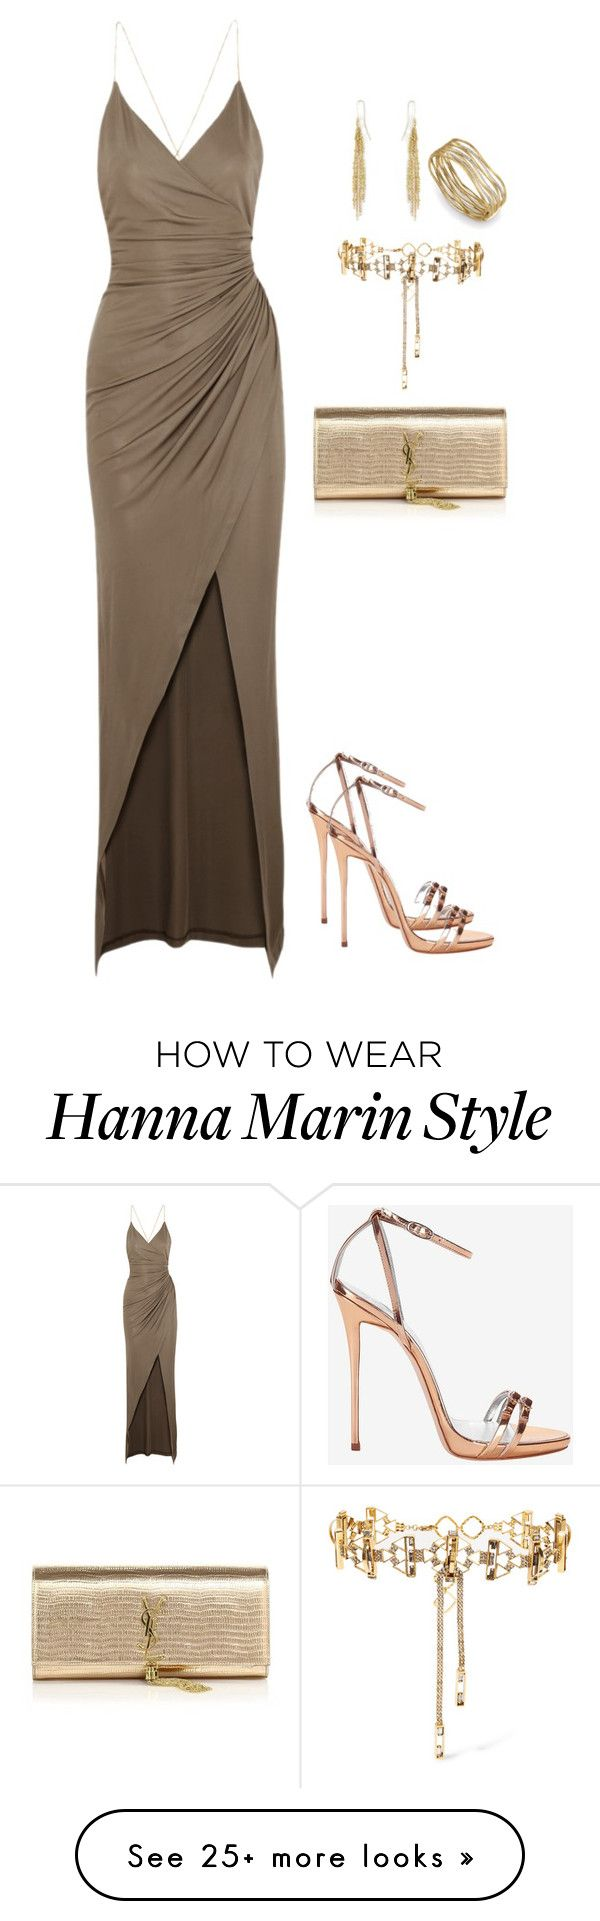 """Hanna Marin Prom Ispo"" by rosewoodangel on Polyvore featuring Giuseppe Zanotti, Balmain, Yves Saint Laurent, Erickson Beamon and Natasha Collis"